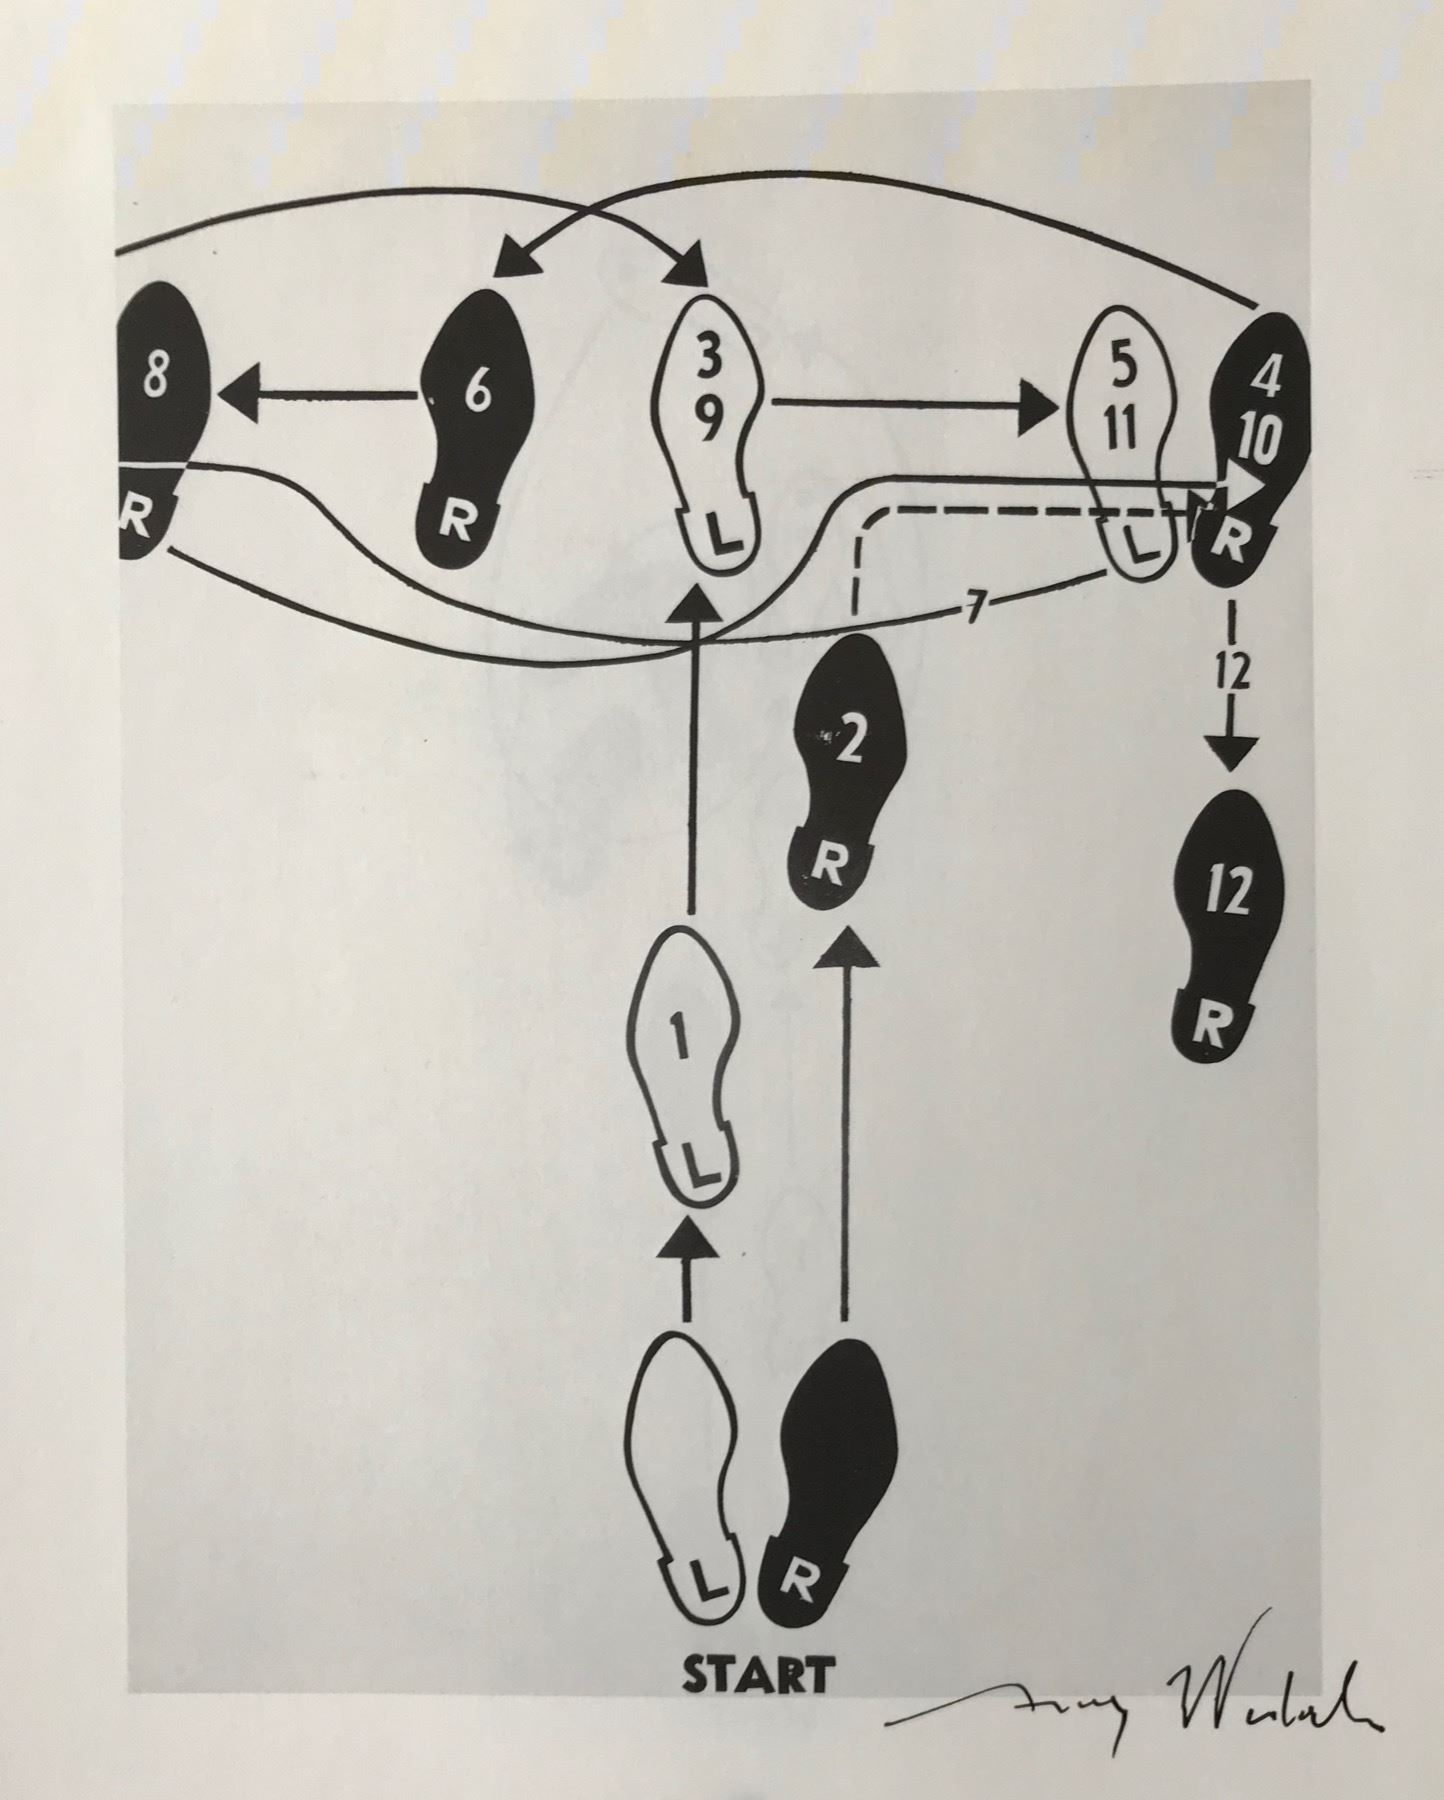 small resolution of image 1 andy warhol dance diagram signed print 1986